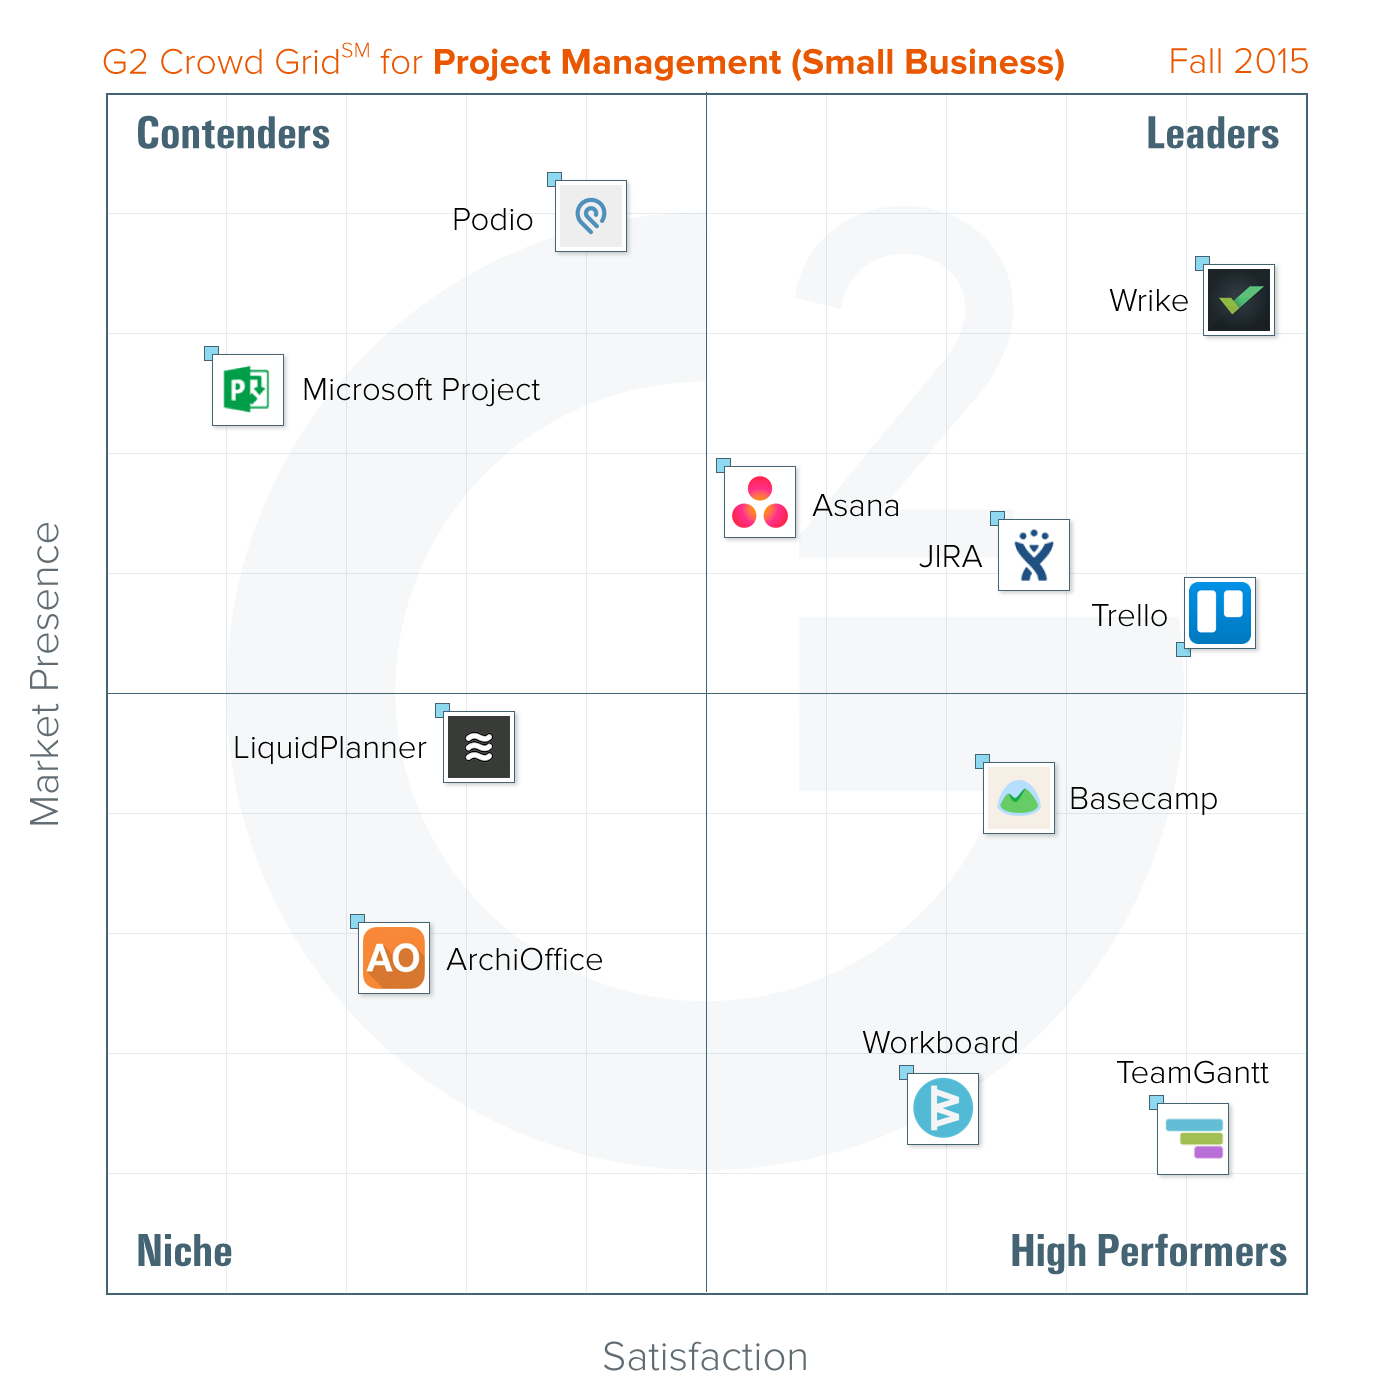 Best Project Management Software for Small Business | G2 Crowd